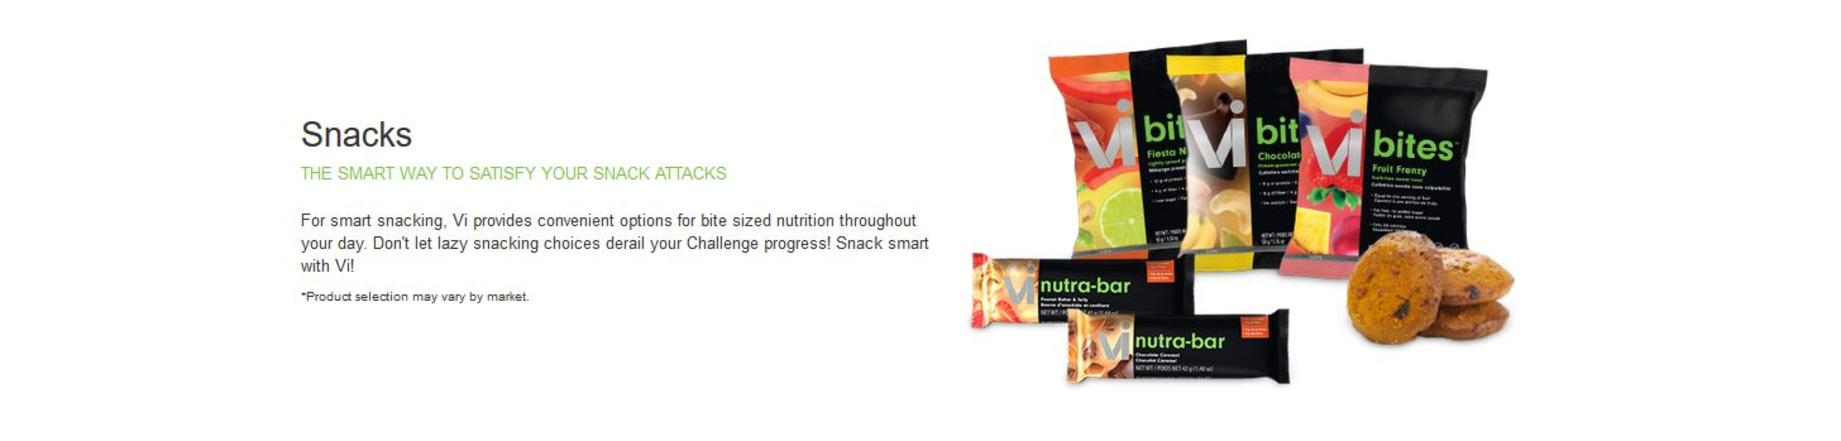 Vi Snacks come in an assotment of product and flavours such as two flavors of Vi Nutra Bar along with Vi Cookies in four flavors as well as Vi Bites. Introducing Vi Bites, a product line of delicious, crunchy and nutritious snacks designed to support your individual Challenge goals. Whether your Challenge goal is weight-loss, weight-maintenance, active or fitness, Vi Bites provides you with a sweet and a savory option. Each variety is suitable for vegetarians, packaged for convenience, and has no cholesterol, artificial sweeteners, preservatives or colors. With Vi Bites, you get nutrition, flavor and variety: • Fruit Frenzy is an all-natural mix of freeze-dried fruits that is a guilt-free sweet treat. • Glorious Greens is a blend of freeze-dried veggies with a savory Italian-style spice. • Chocolate Monkey is an all-natural, protein-powered snack that combines banana chips, chocolate, nuts and seeds for a crunchy and satisfying snack. • Fiesta Nut is a protein-packed snack that combines nuts, seeds and soy nuts that is lightly spiced for a tasty, wholesome snack. It's bite-sized nutrition at its best! Order now and try all four flavors.